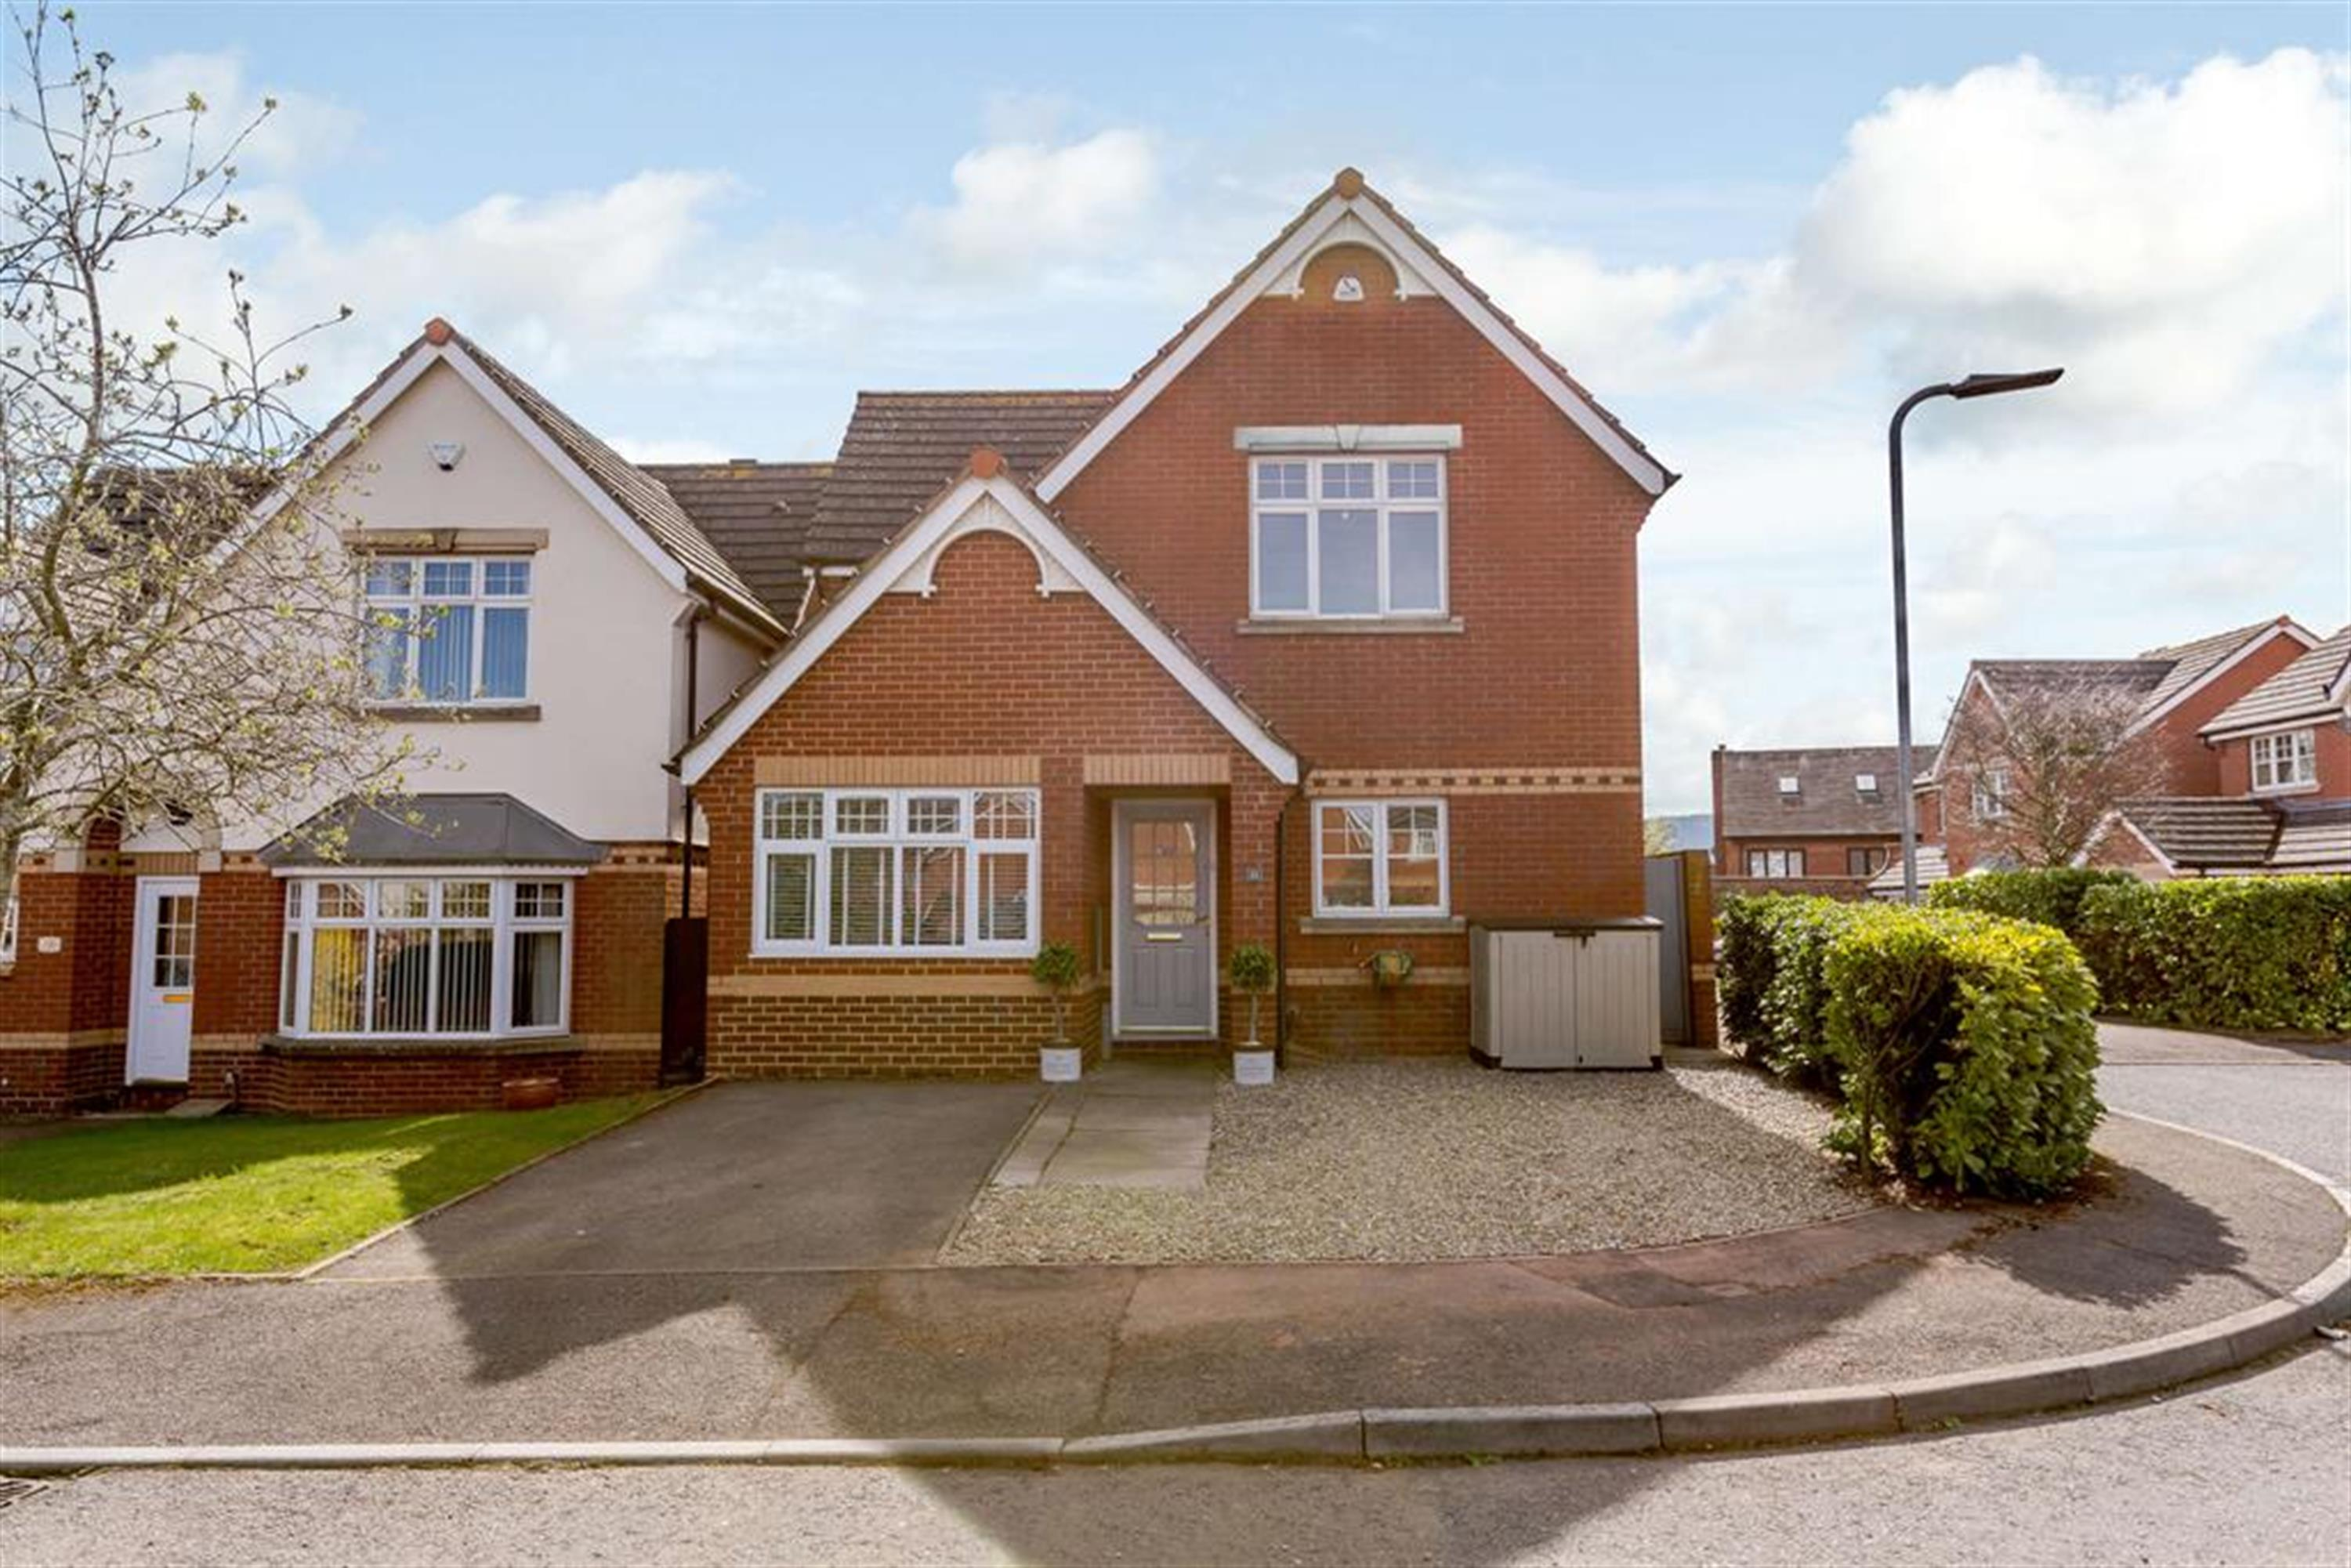 11 Oak Tree Rise, Ross On Wye, Herefordshire, HR9 7XZ